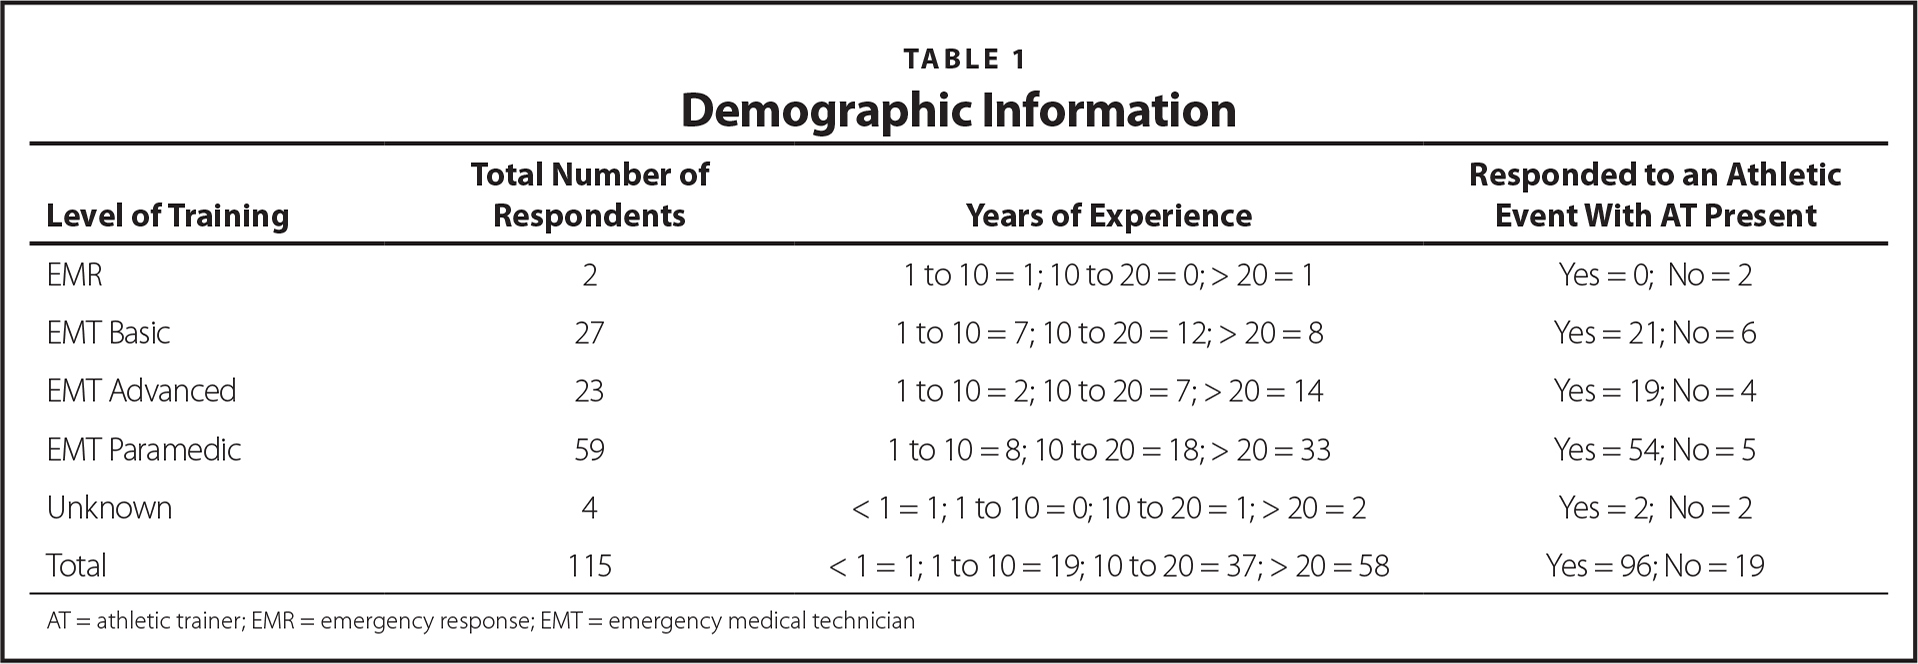 Demographic Information